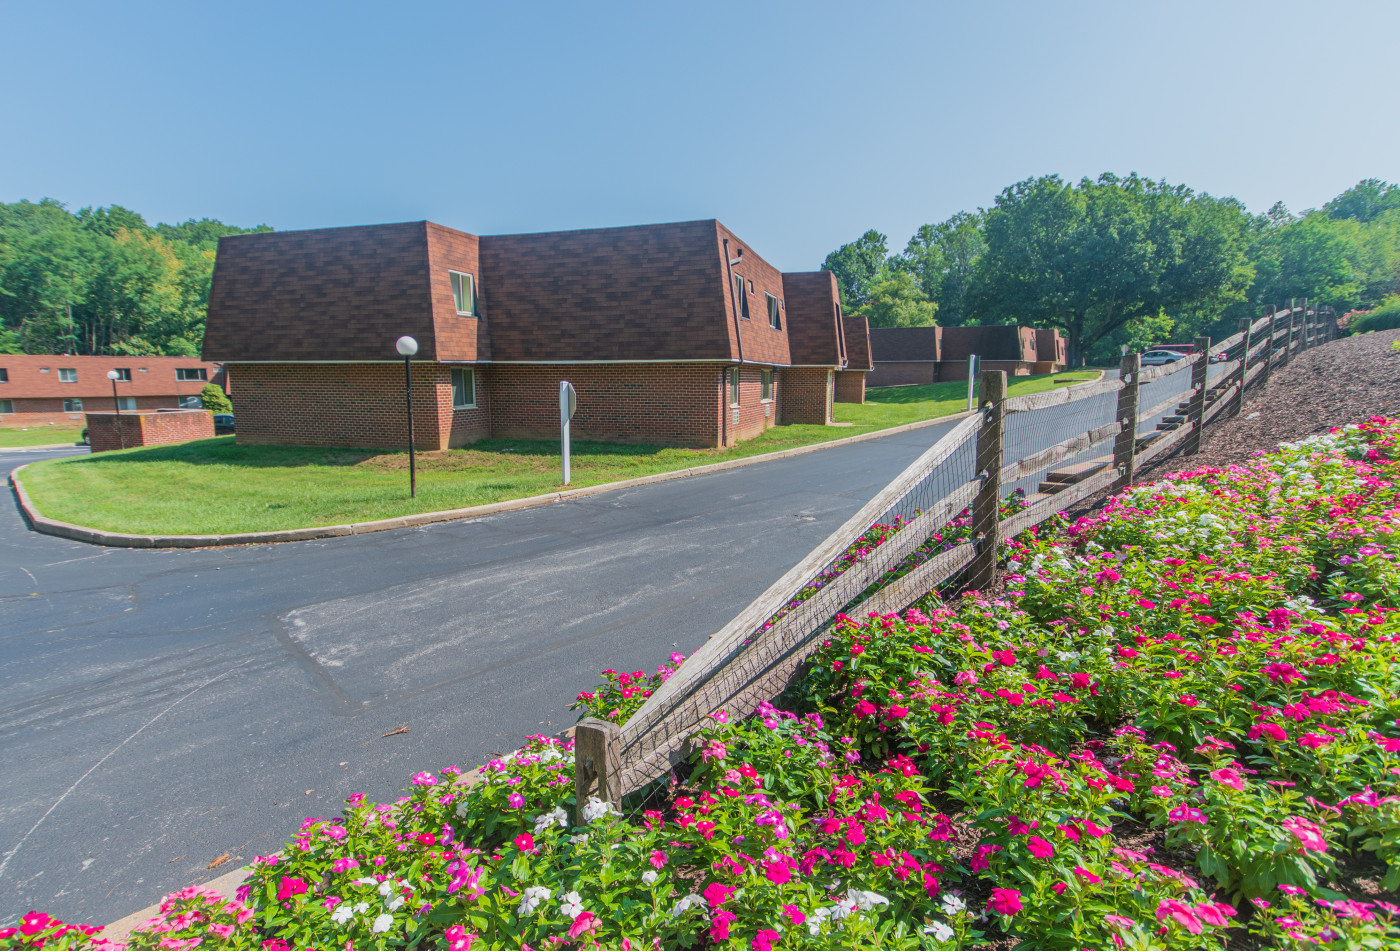 1 Bedroom Apartments In West Chester Pa | Hollow Run Apartments